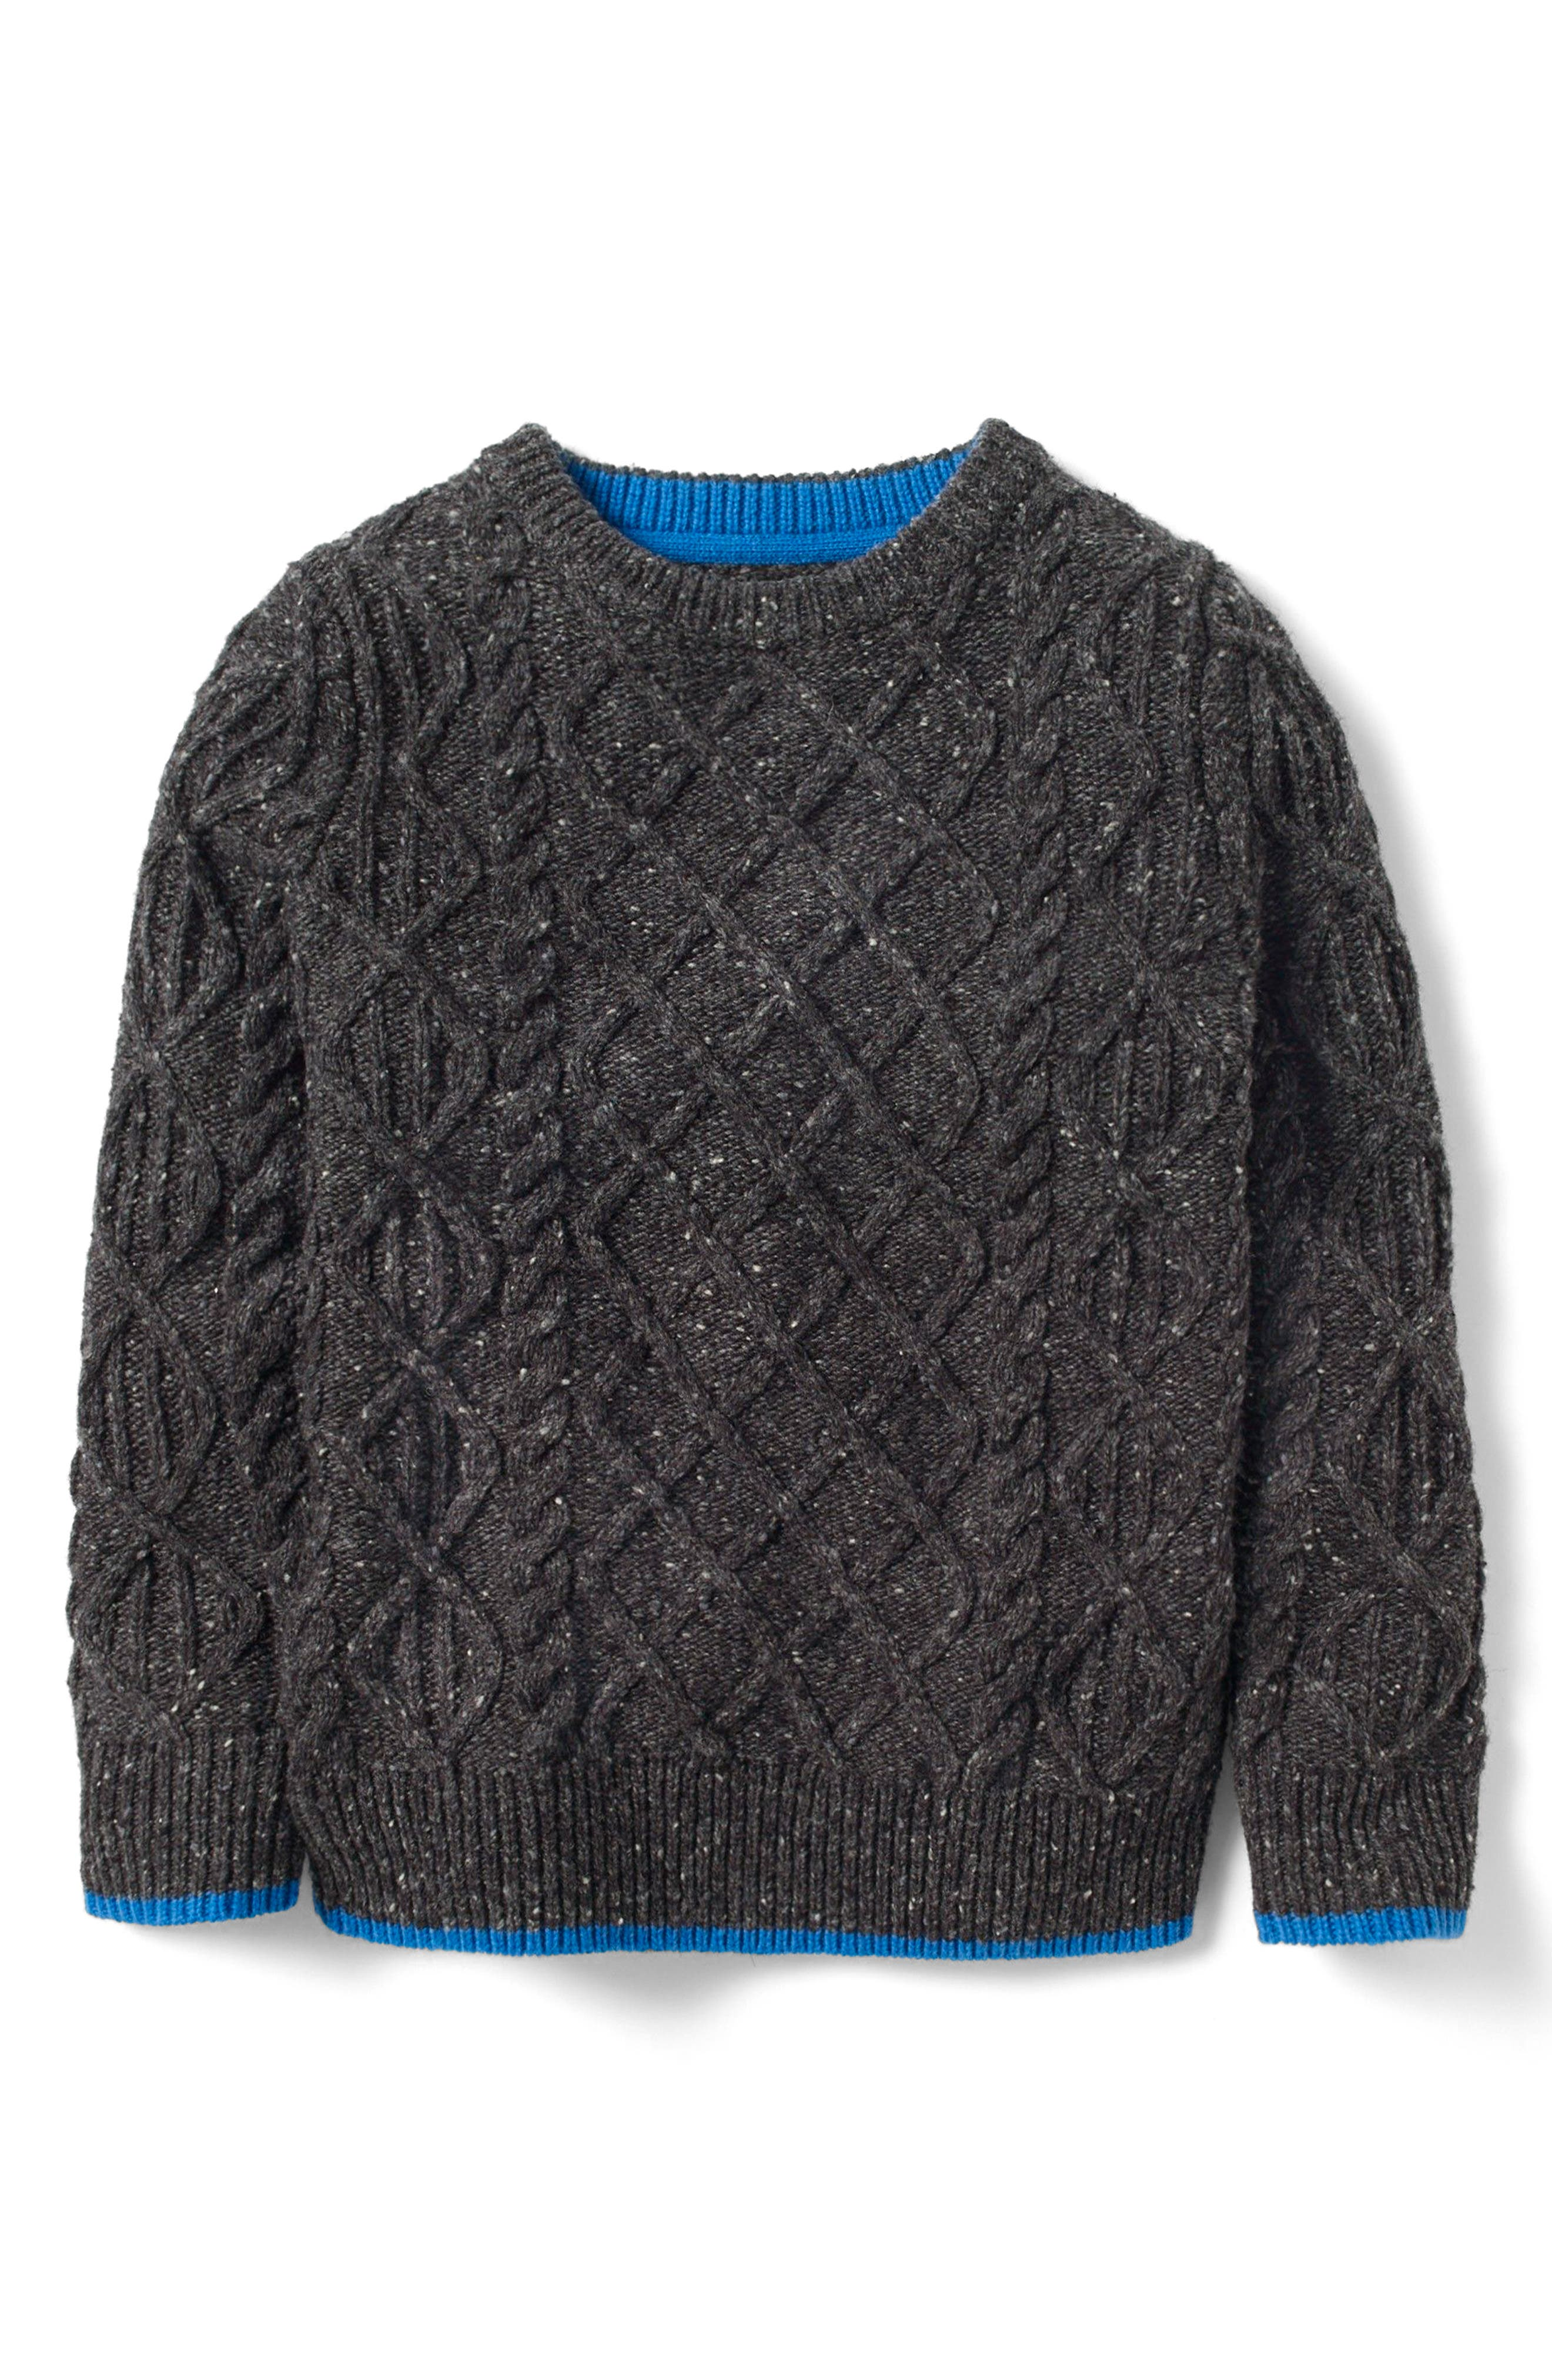 Mini Boden Cable Wool Sweater (Toddler Boys, Little Boys & Big Boys)